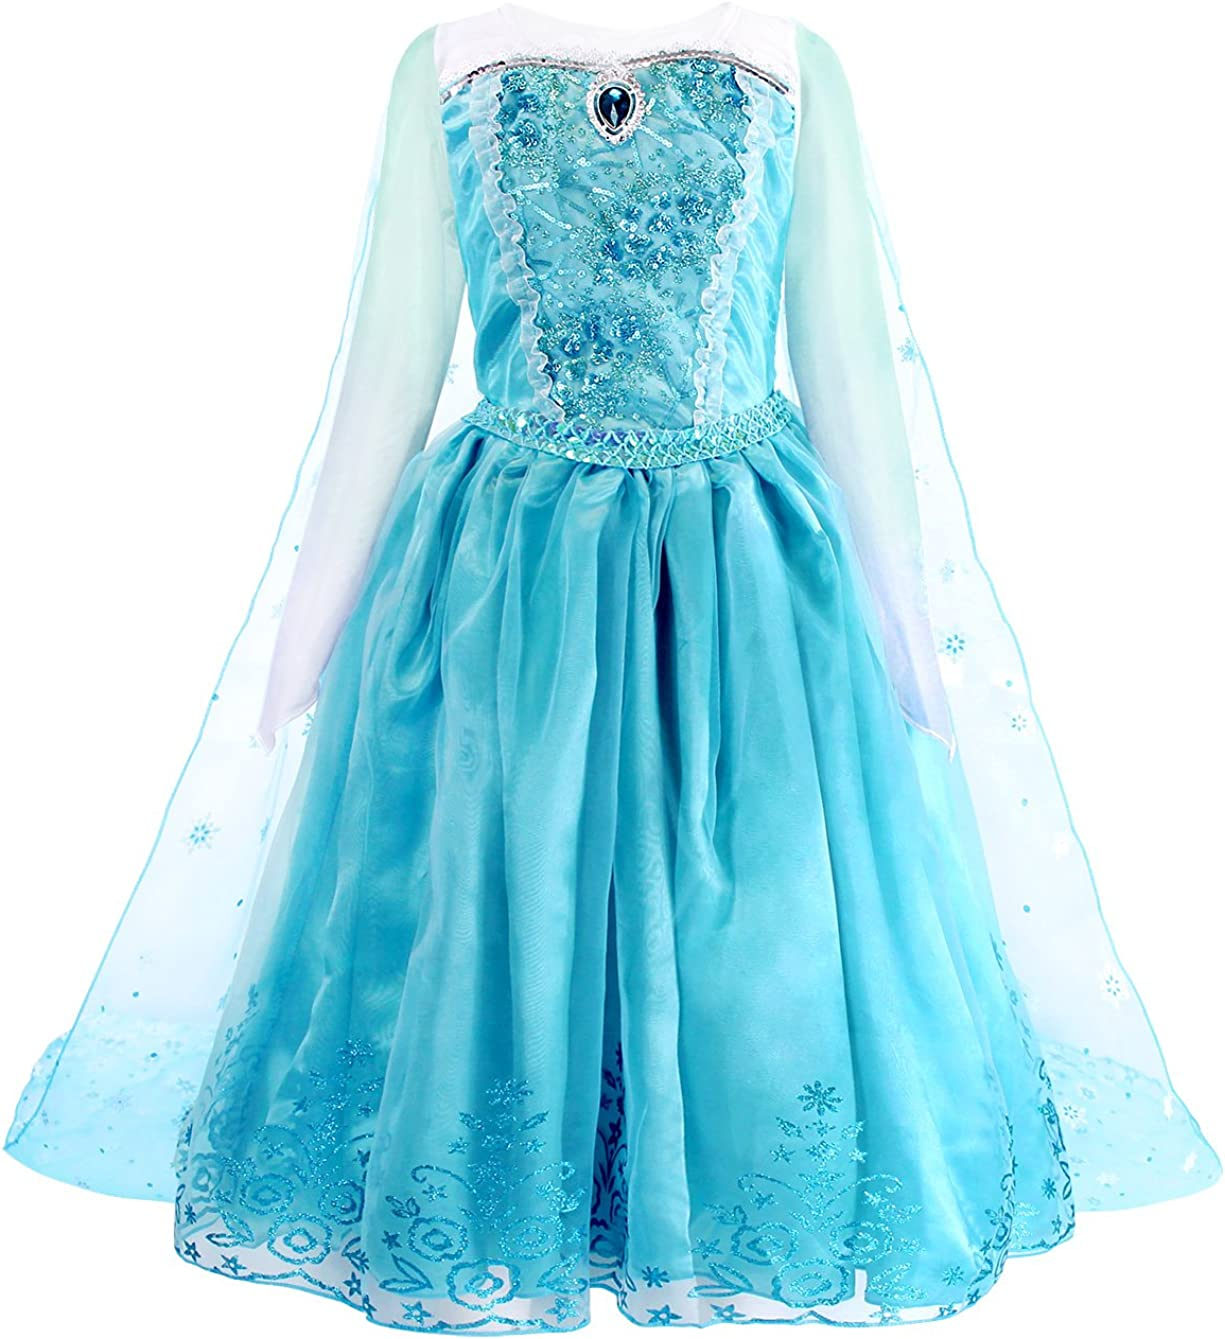 MetCuento Jasmine Little Mermaid Ariel Costume Kids Girls Toddlers Princess Dress Up Fancy Party Cosplay Birthday Outfits